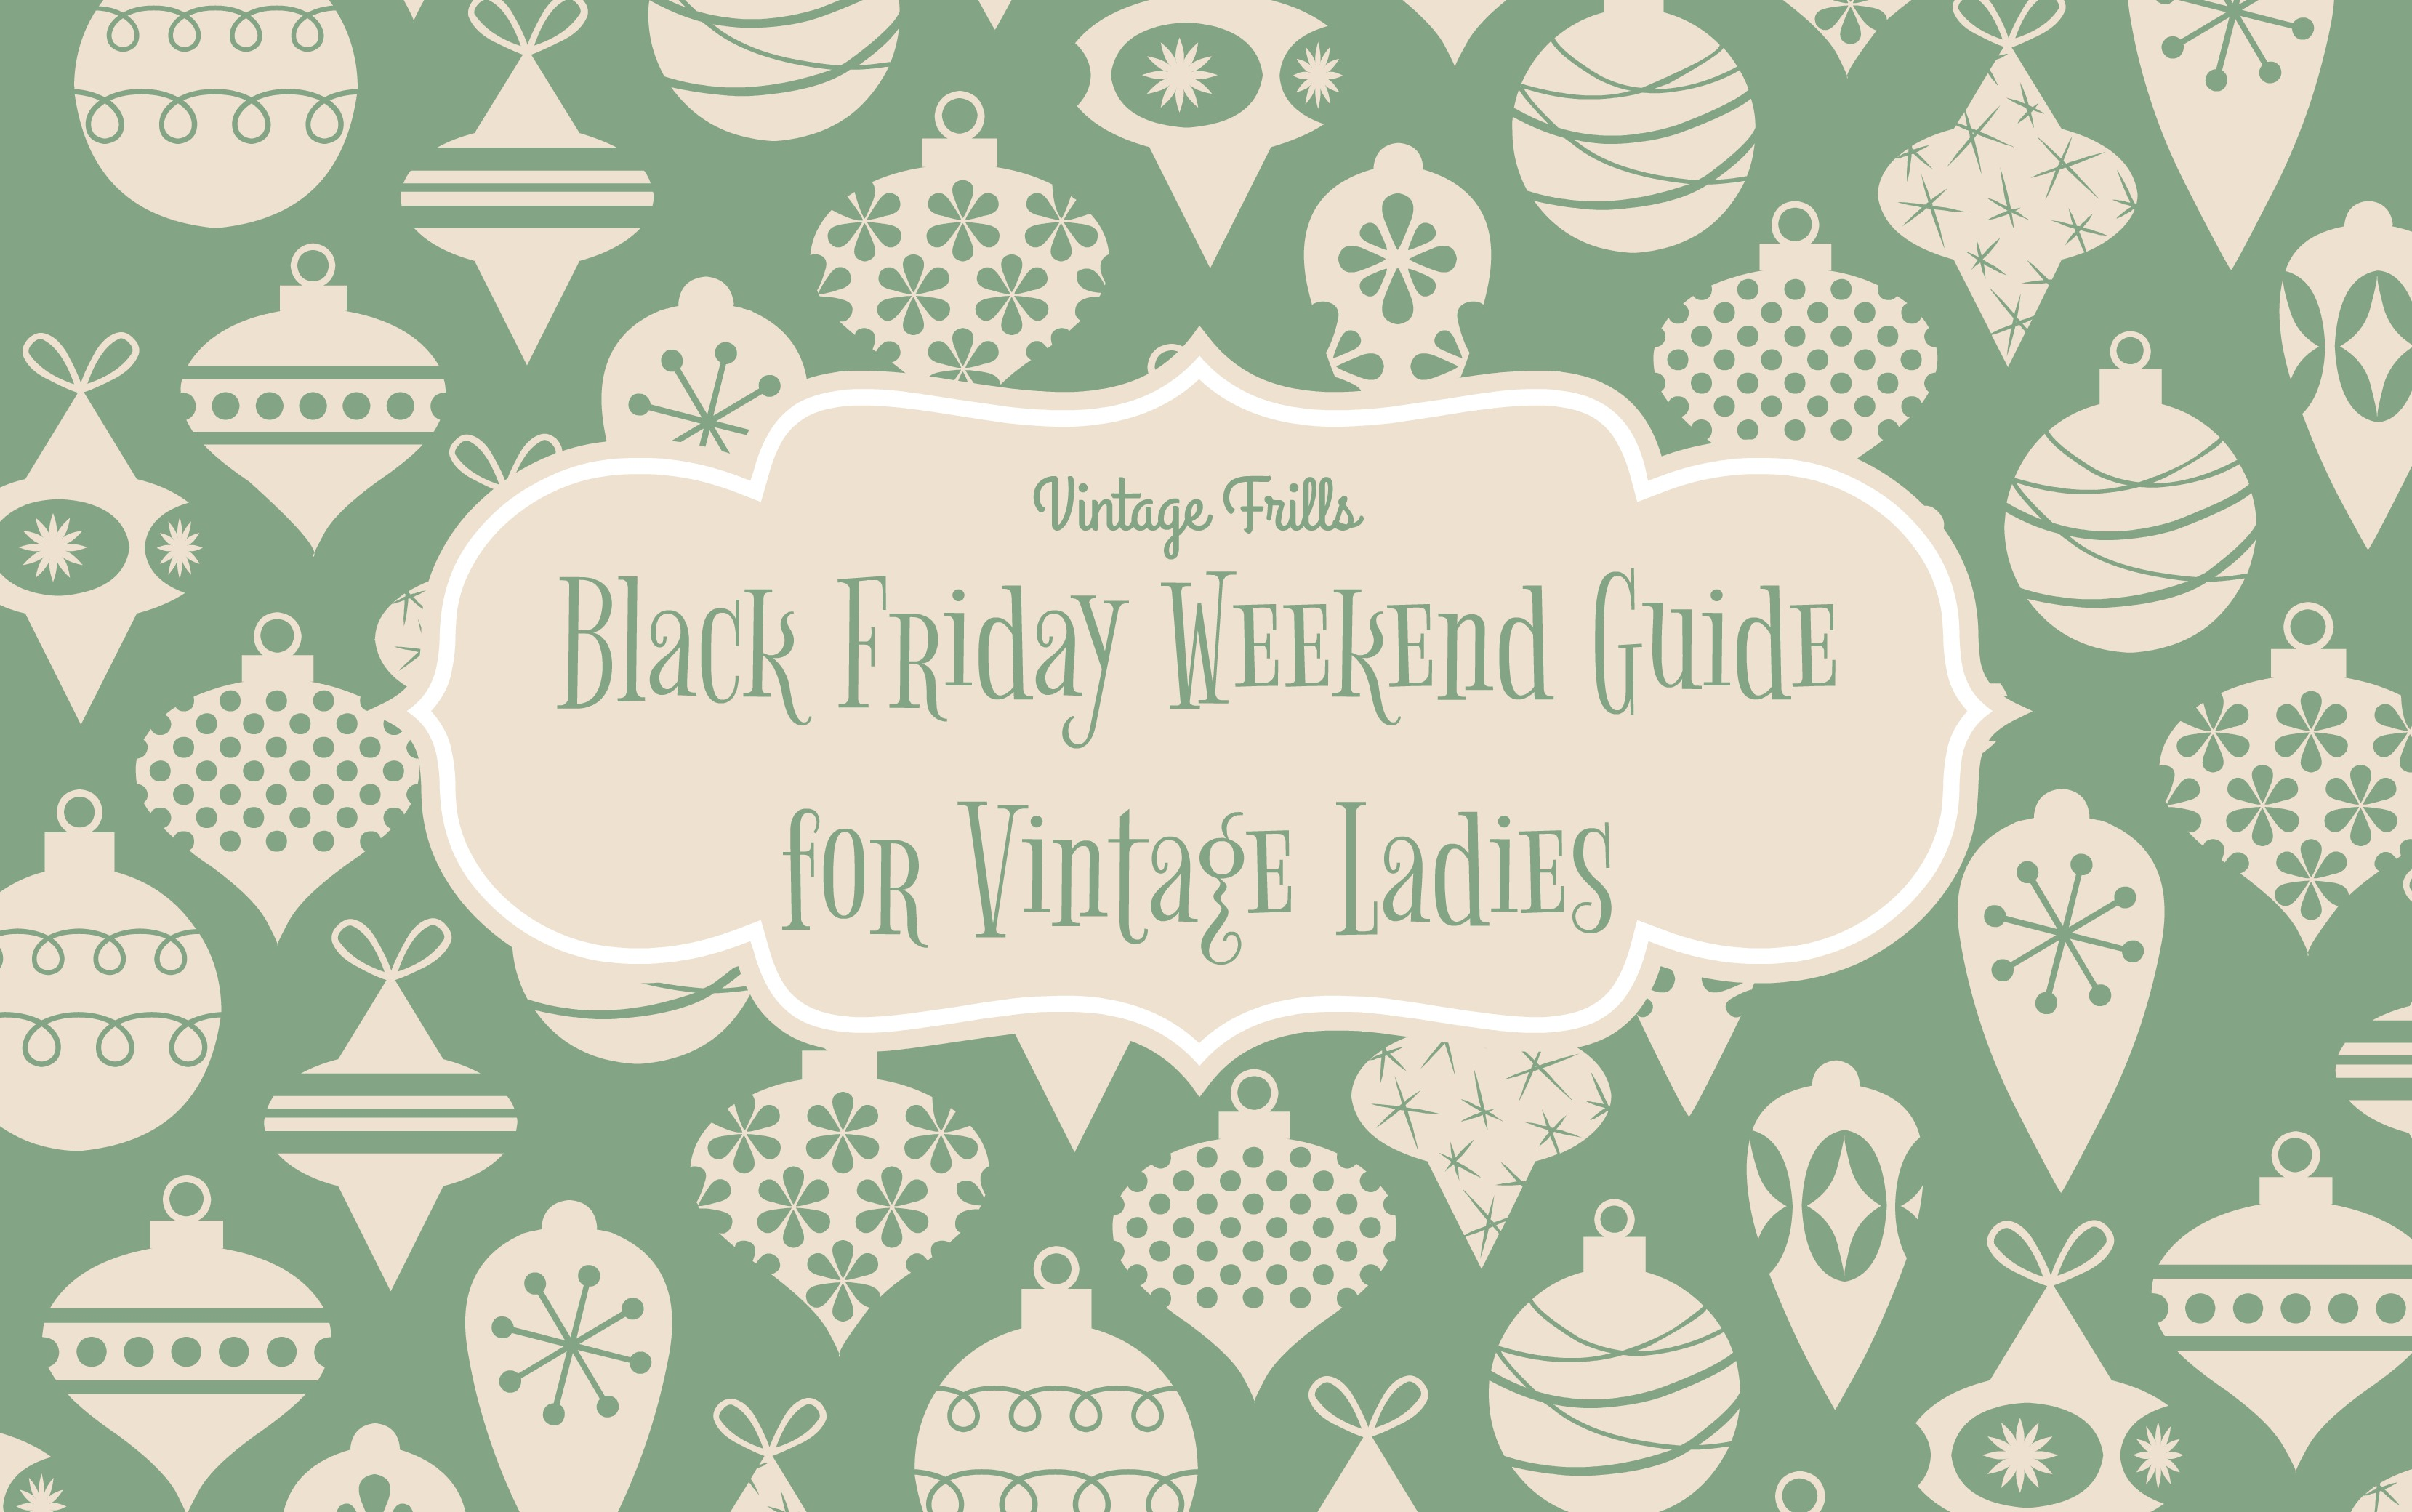 Black Friday Deals for Vintage Ladies